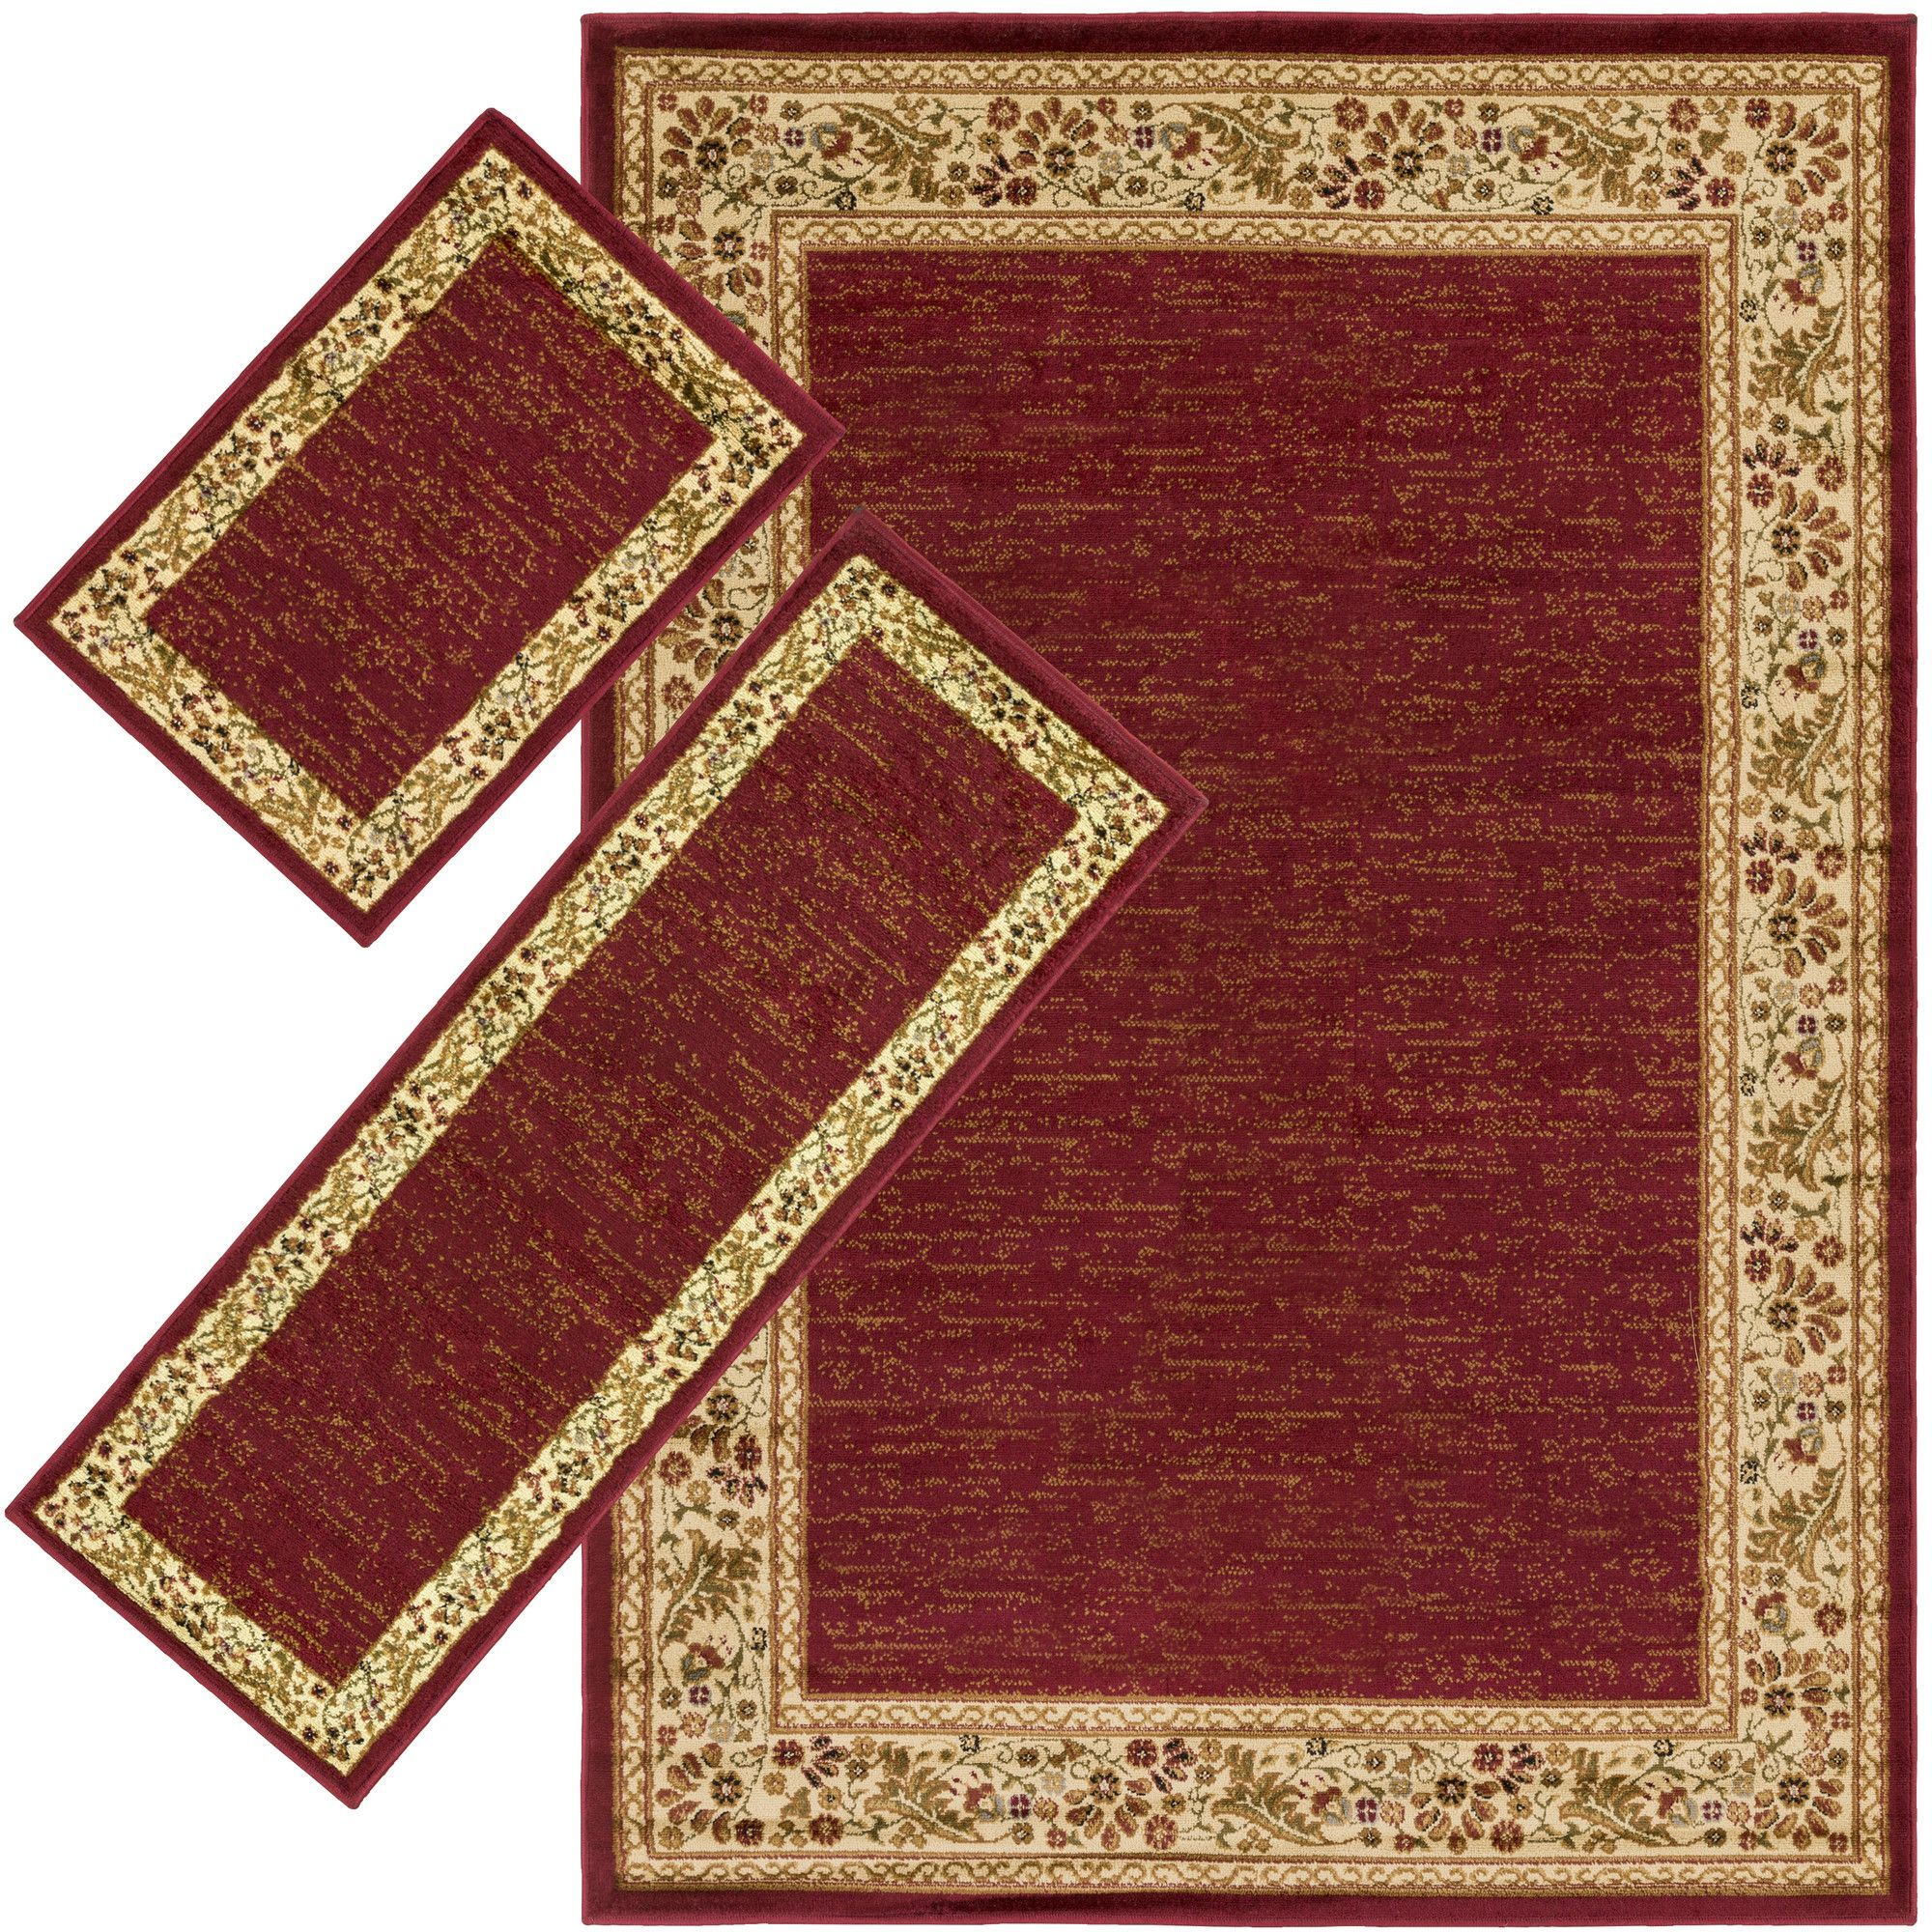 Arbus Dark Red/Wheat Area Rug   Products   Area rug sets ...